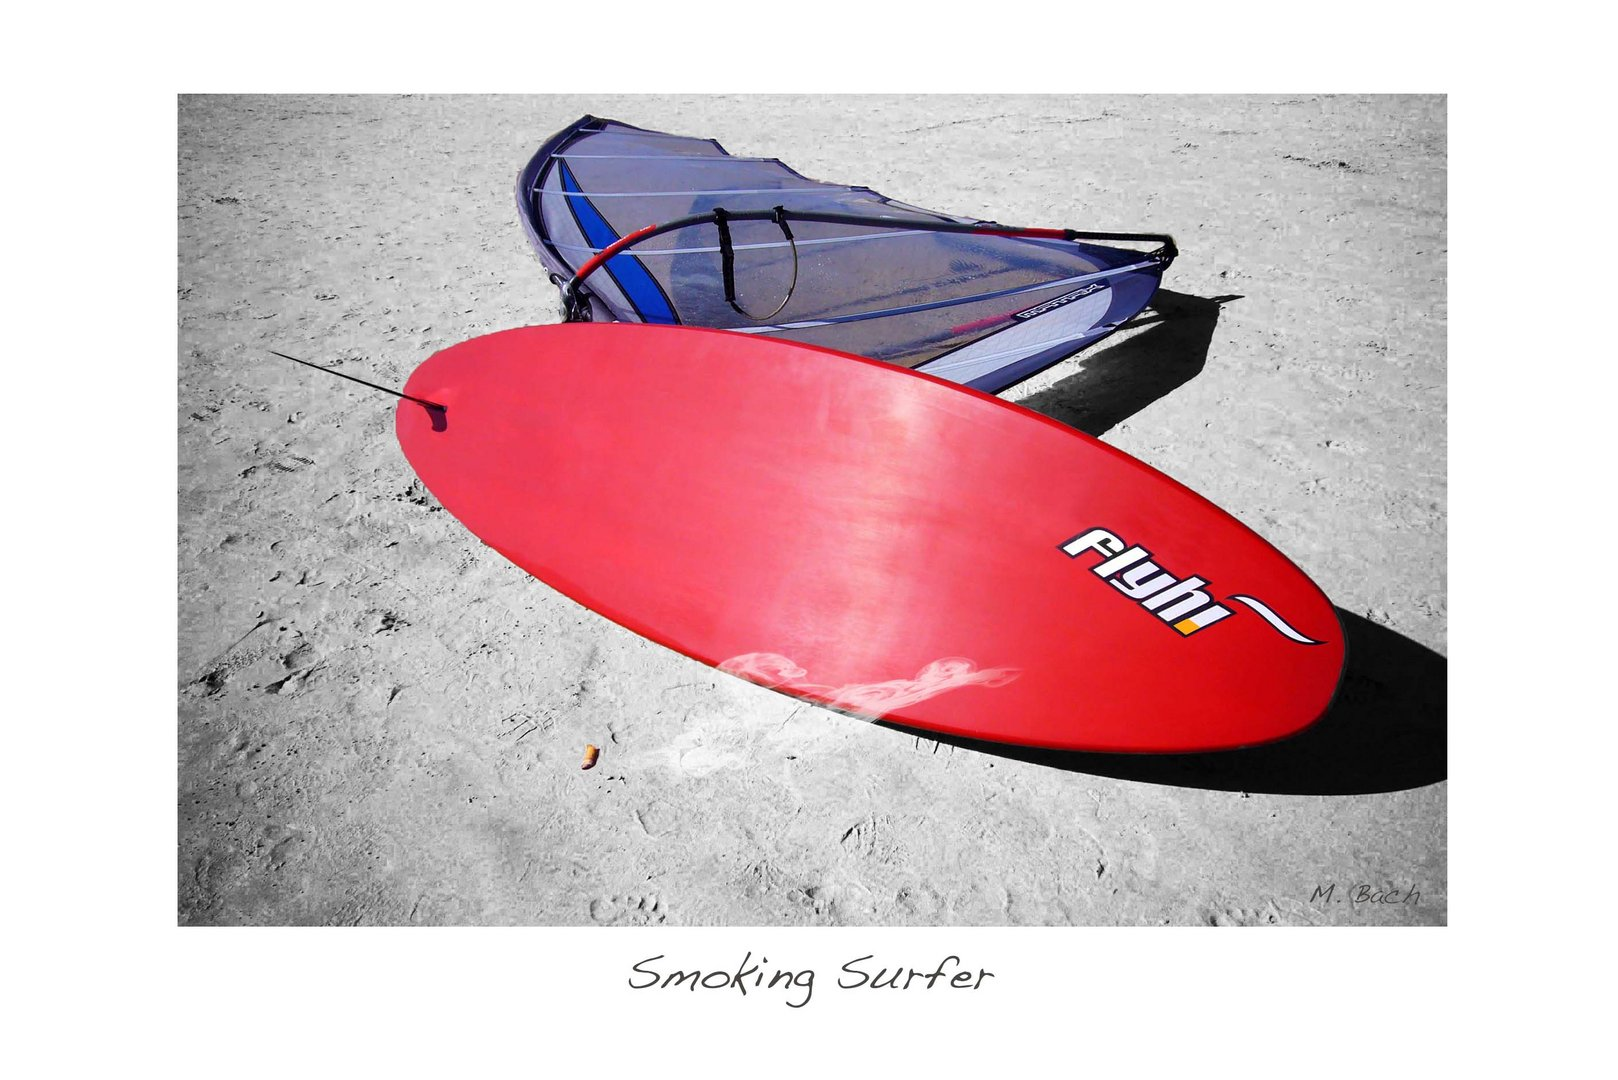 smoking surfer